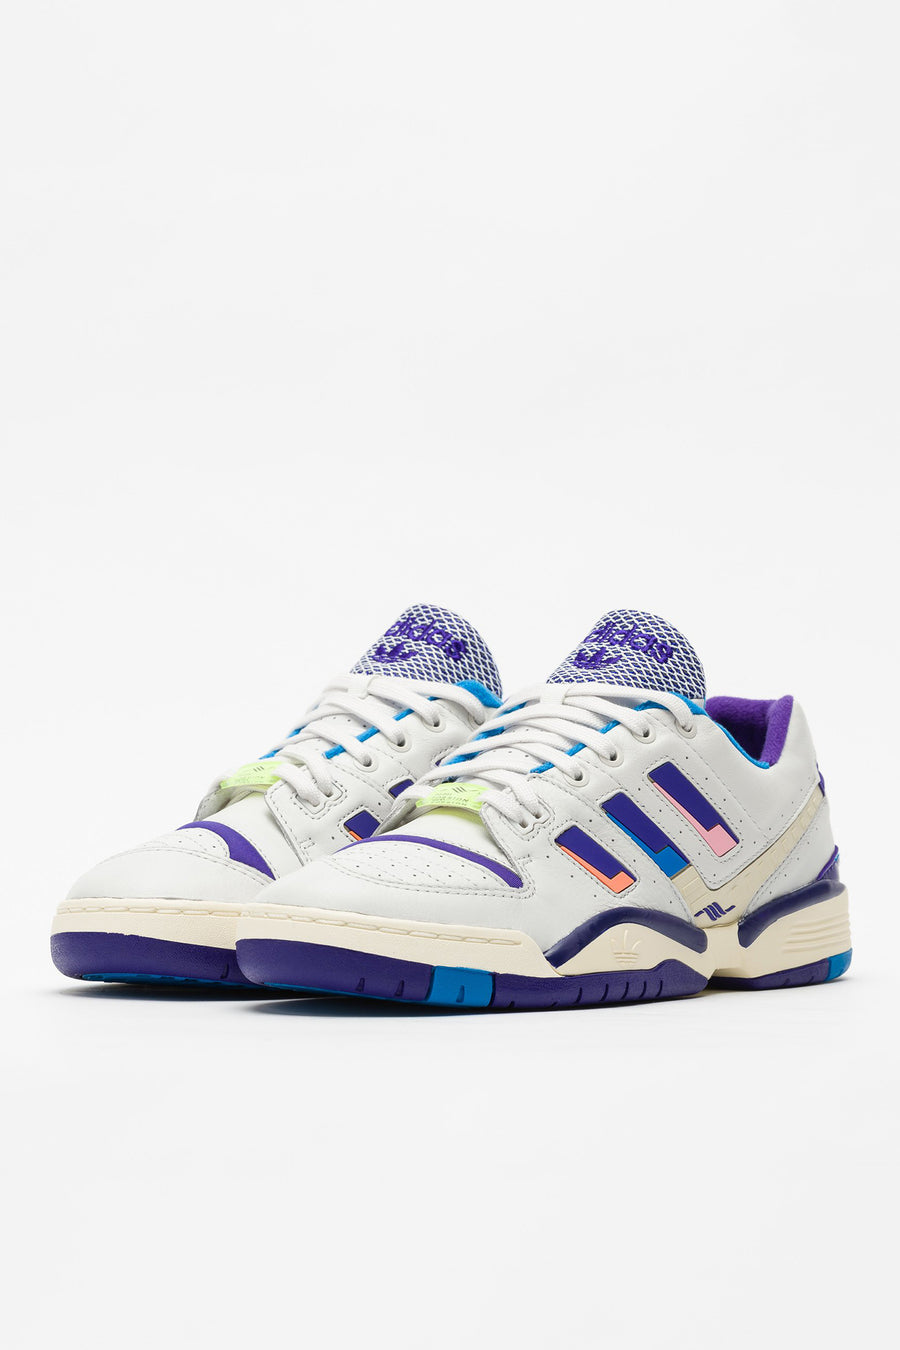 adidas Consortium Torsion Edberg Comp in Crystal White - Notre